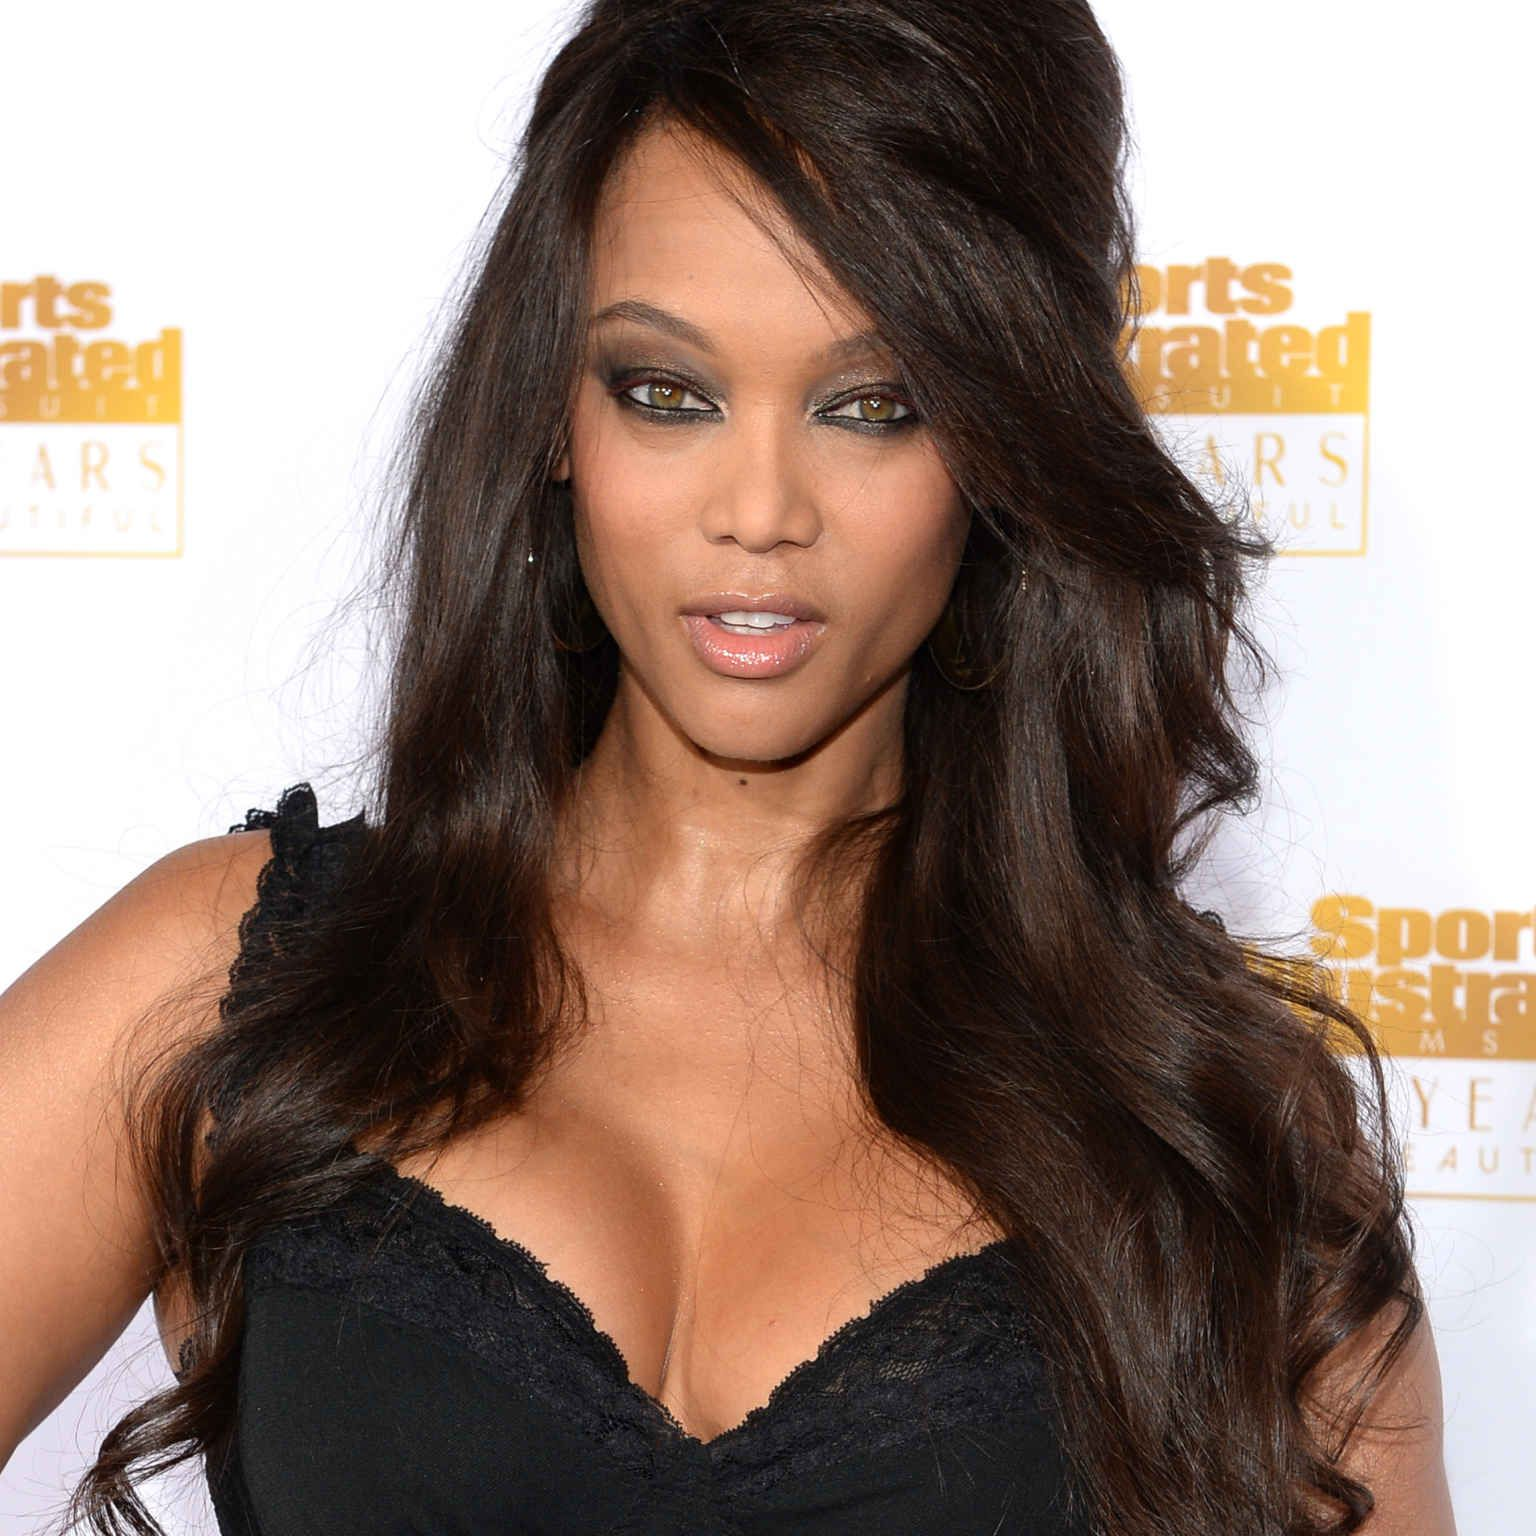 Tyra Banks Launched a Makeup Line Full of Smizing Products